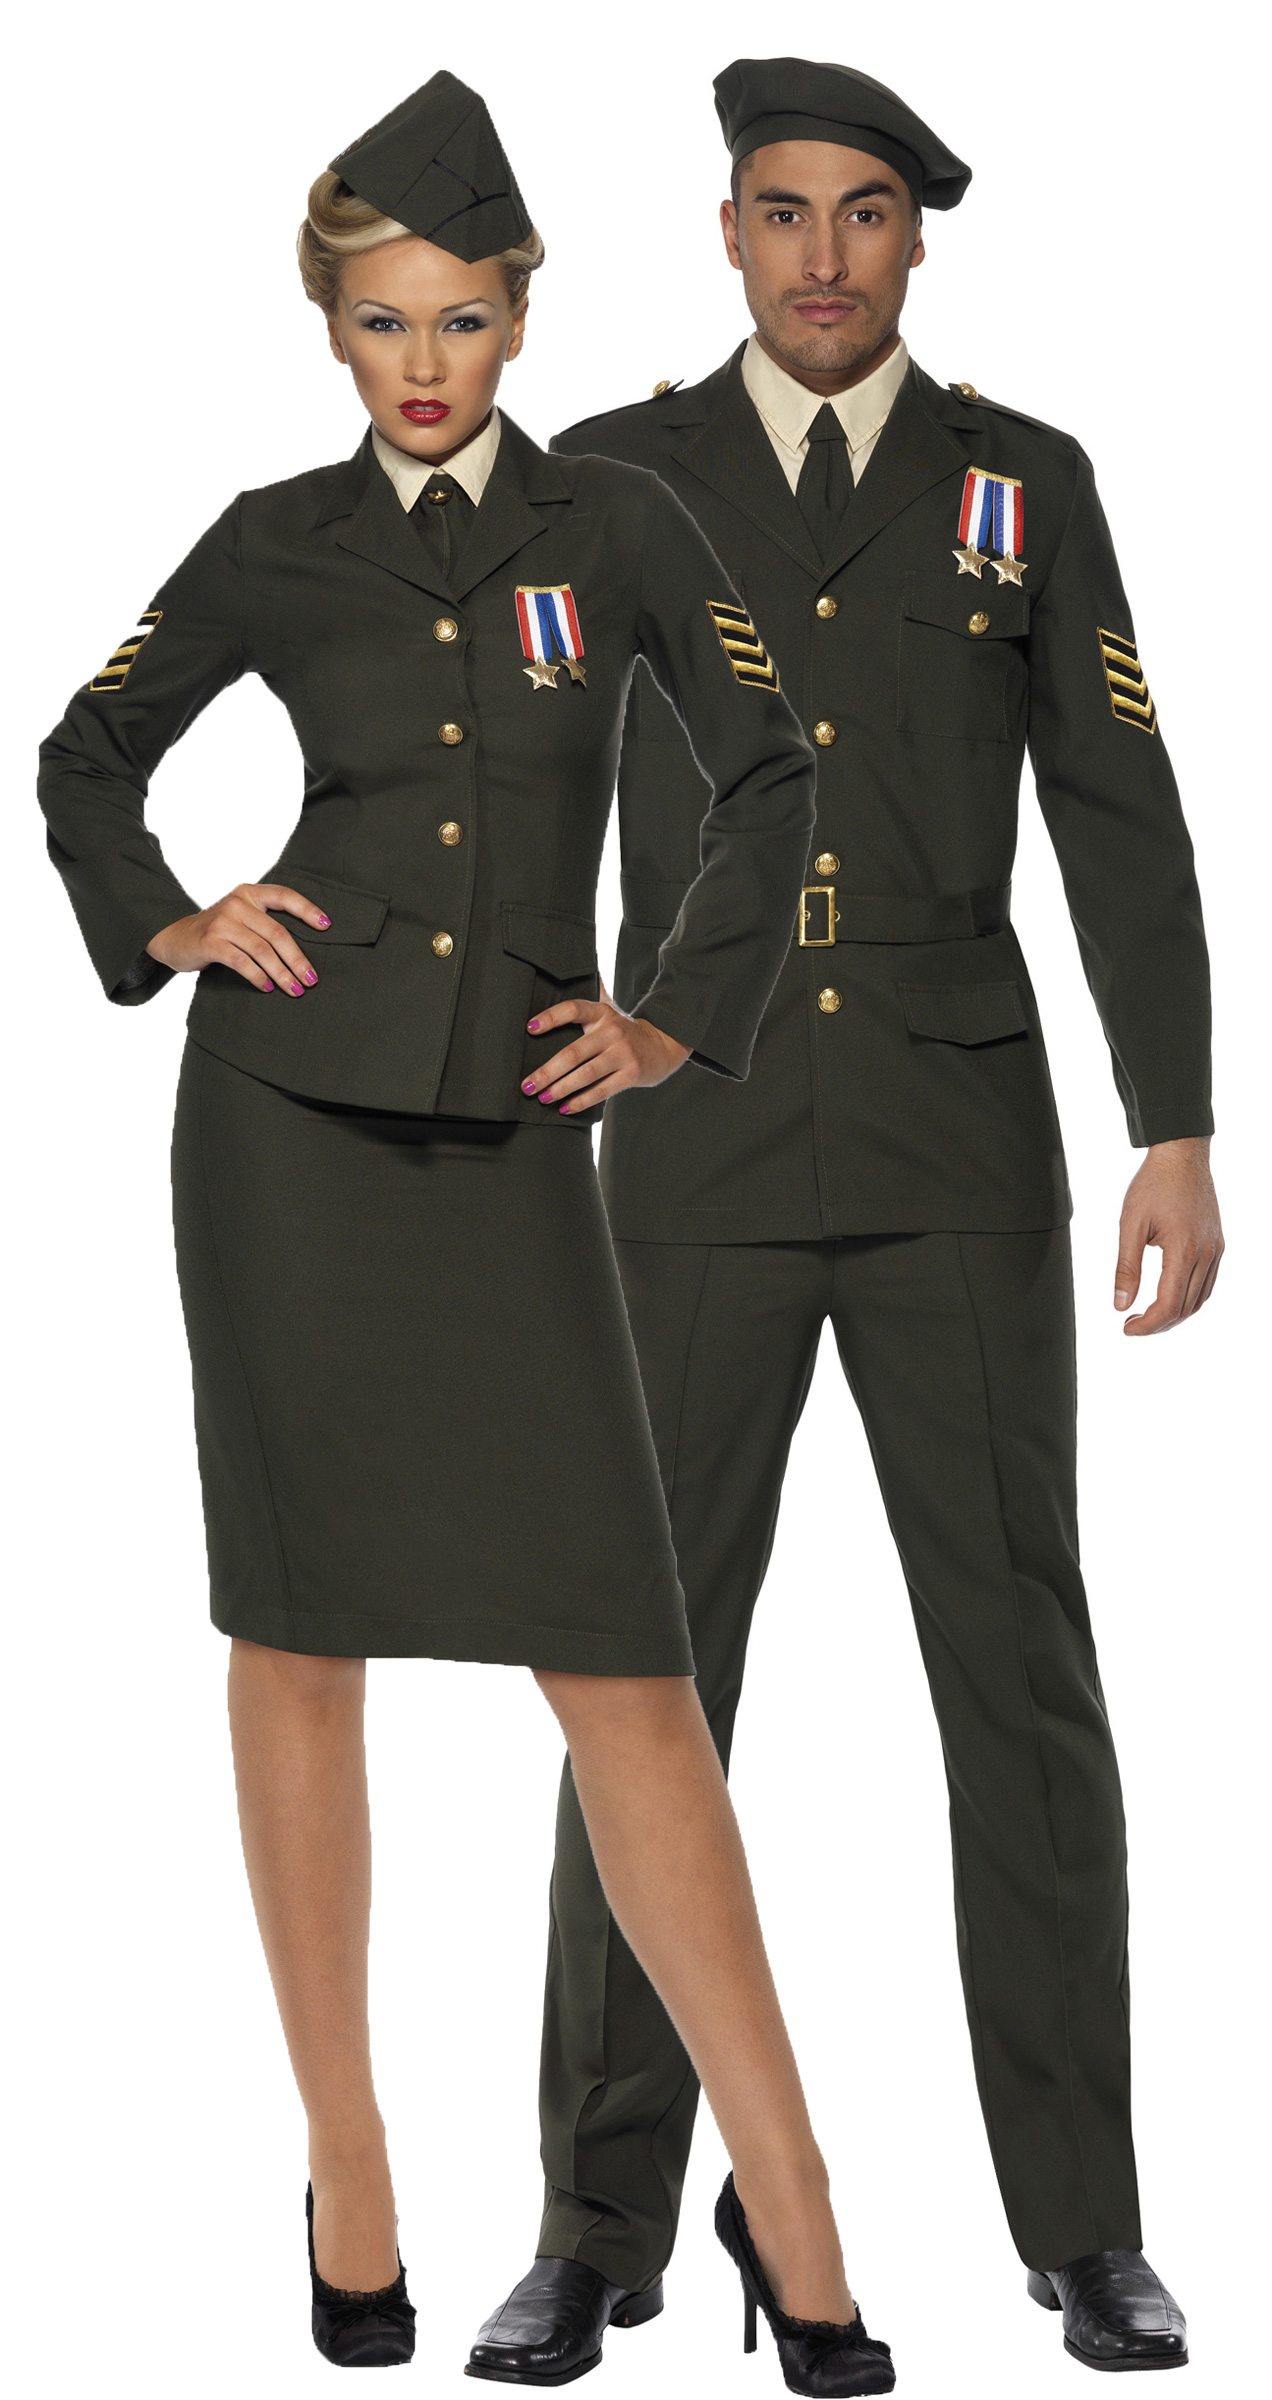 D guisement couples d 39 officiers militaires d guisement couple pas cher soir e costum e th me - Deguisement couple halloween ...